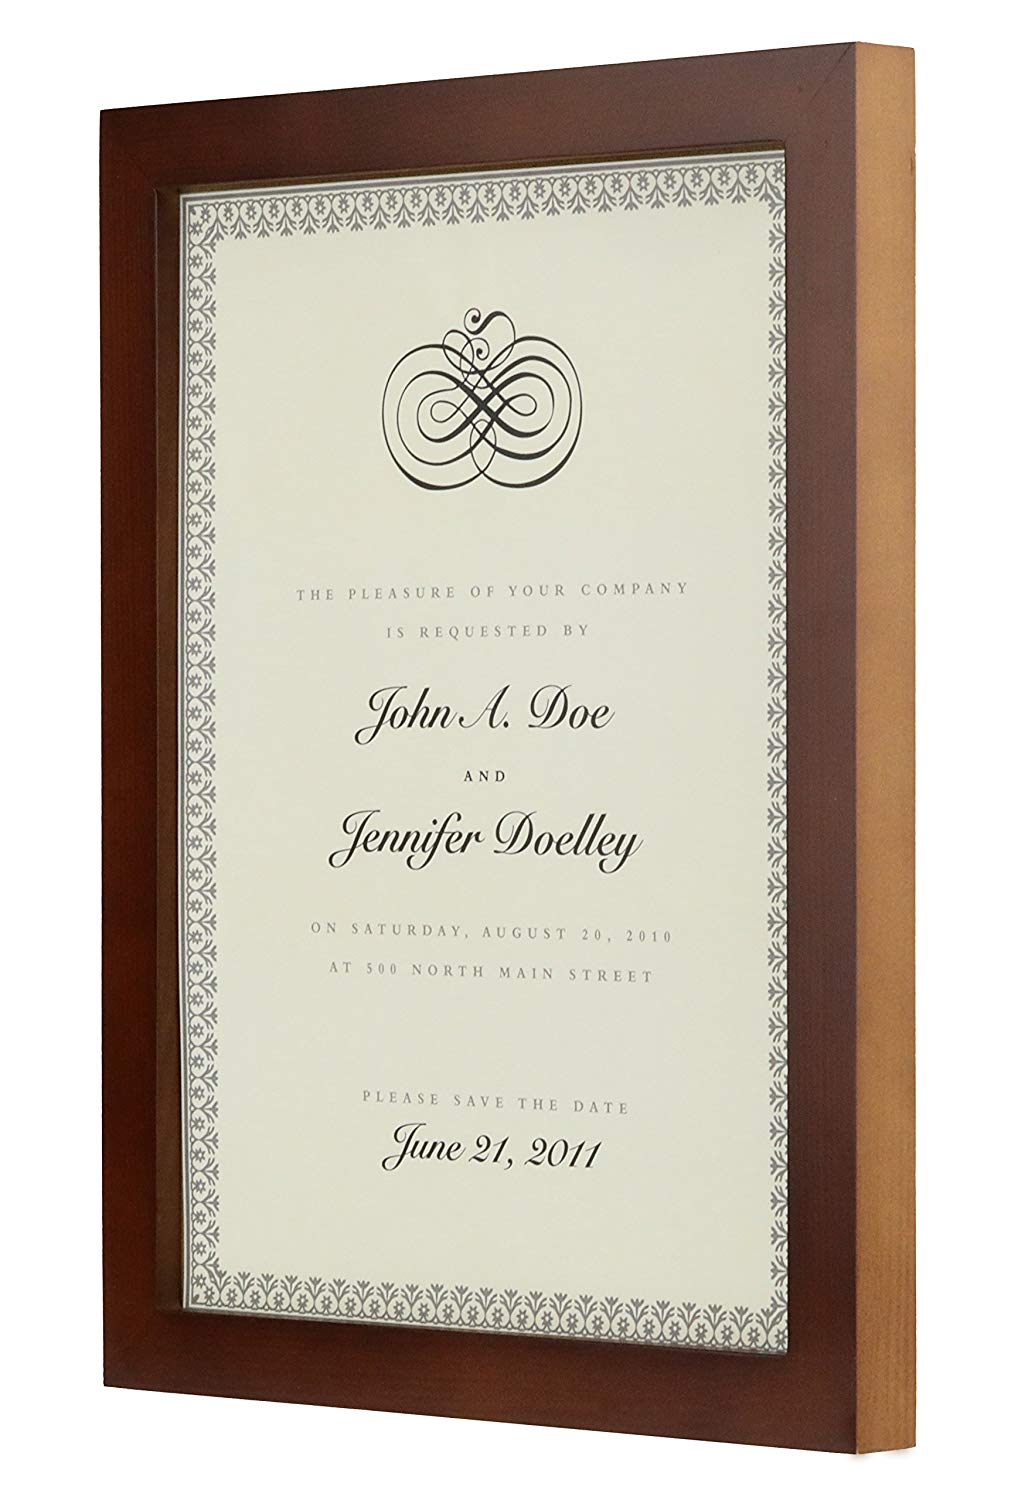 longlongtime 8.5x11 inch Brown Document Frame - Made to Display Certificates, Classic Style, Certificate Frames, Diploma Frames,Document Frames.(Brown)